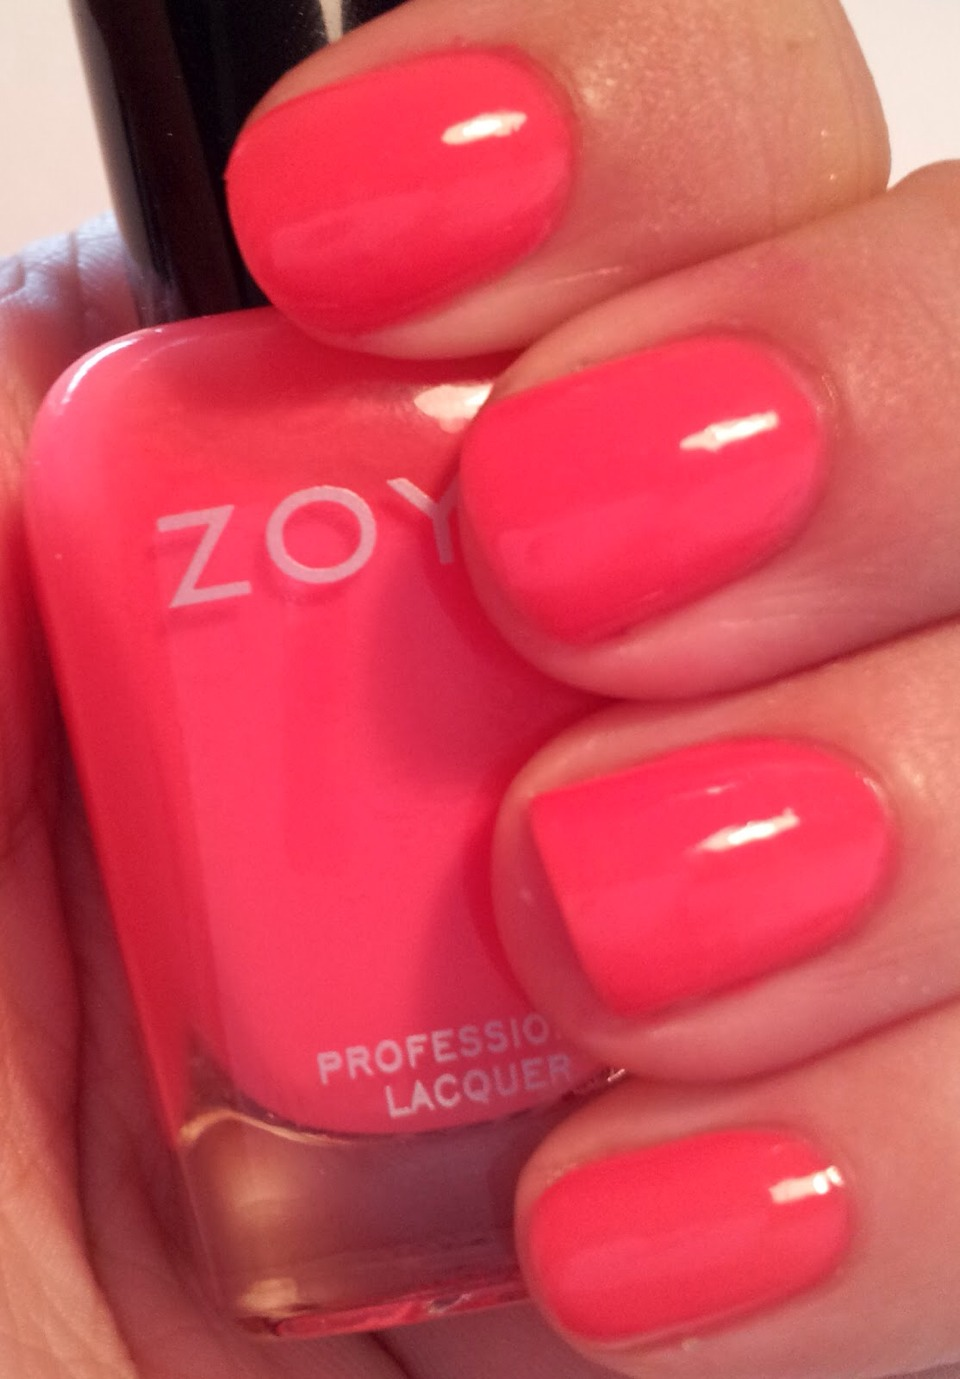 My favourite nailpolish colour for summer. Coral! I love this colour for summer because it is such a warm beautiful colour mixed between pink and orange and is so vibrant and bright.